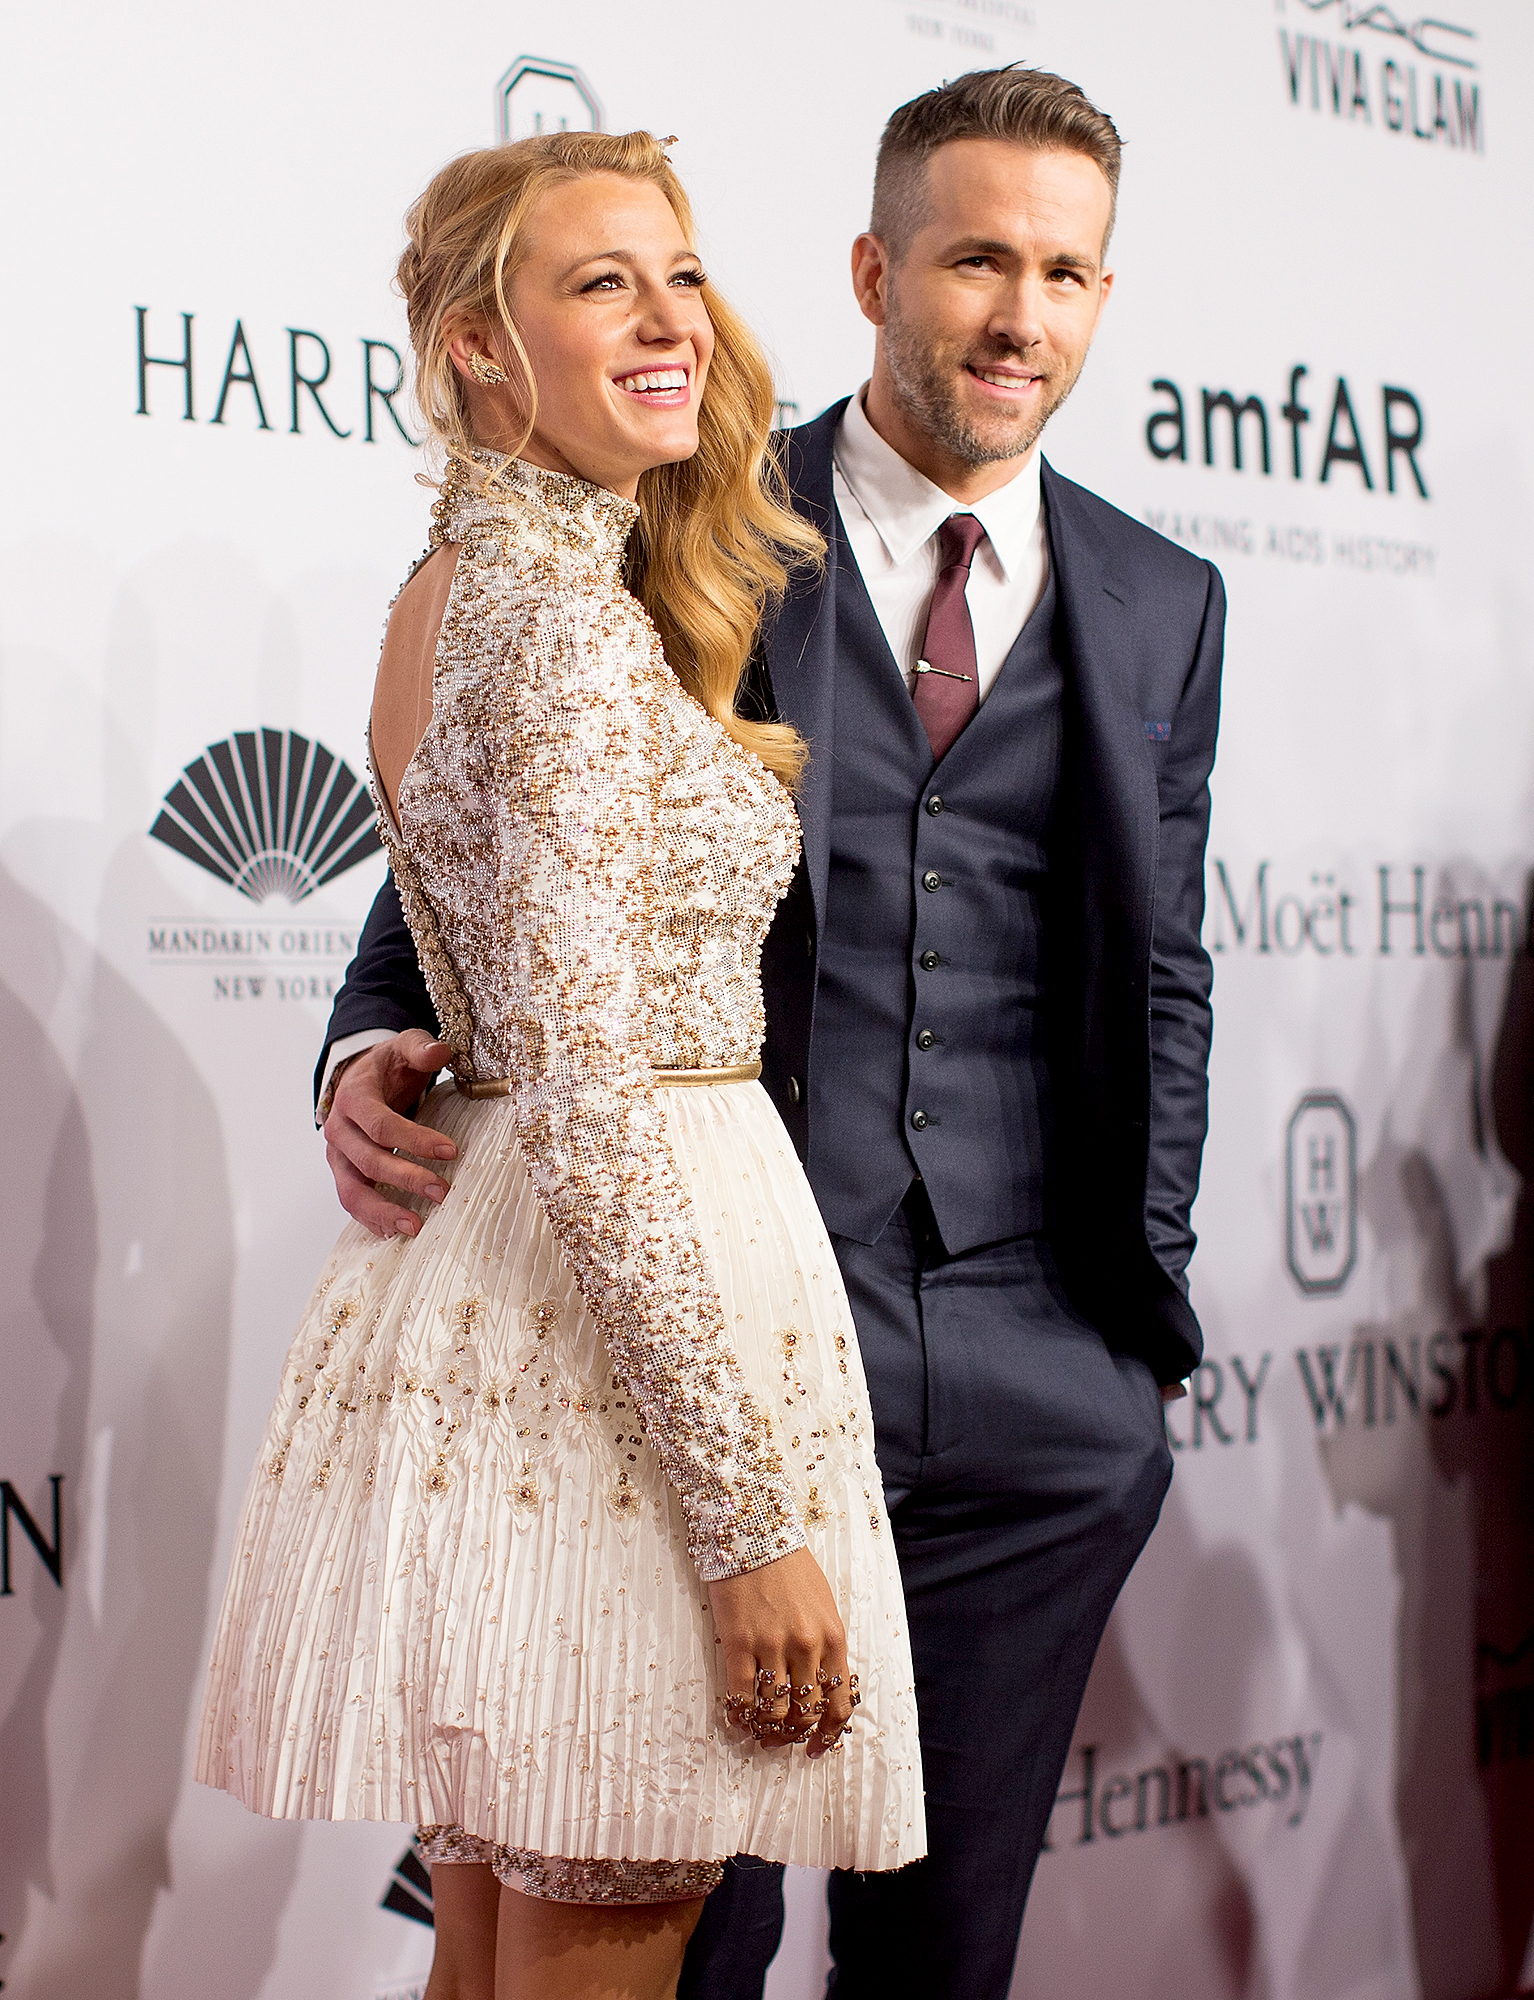 Blake-Lively-Ryan-Reynolds-April-2016 - NEW YORK, NY – FEBRUARY 10: Actors Blake Lively (L) and Ryan Reynolds attend the 2016 amfAR New York Gala at Cipriani Wall Street on February 10, 2016 in New York City. (Photo by Kevin Tachman/Getty Images)